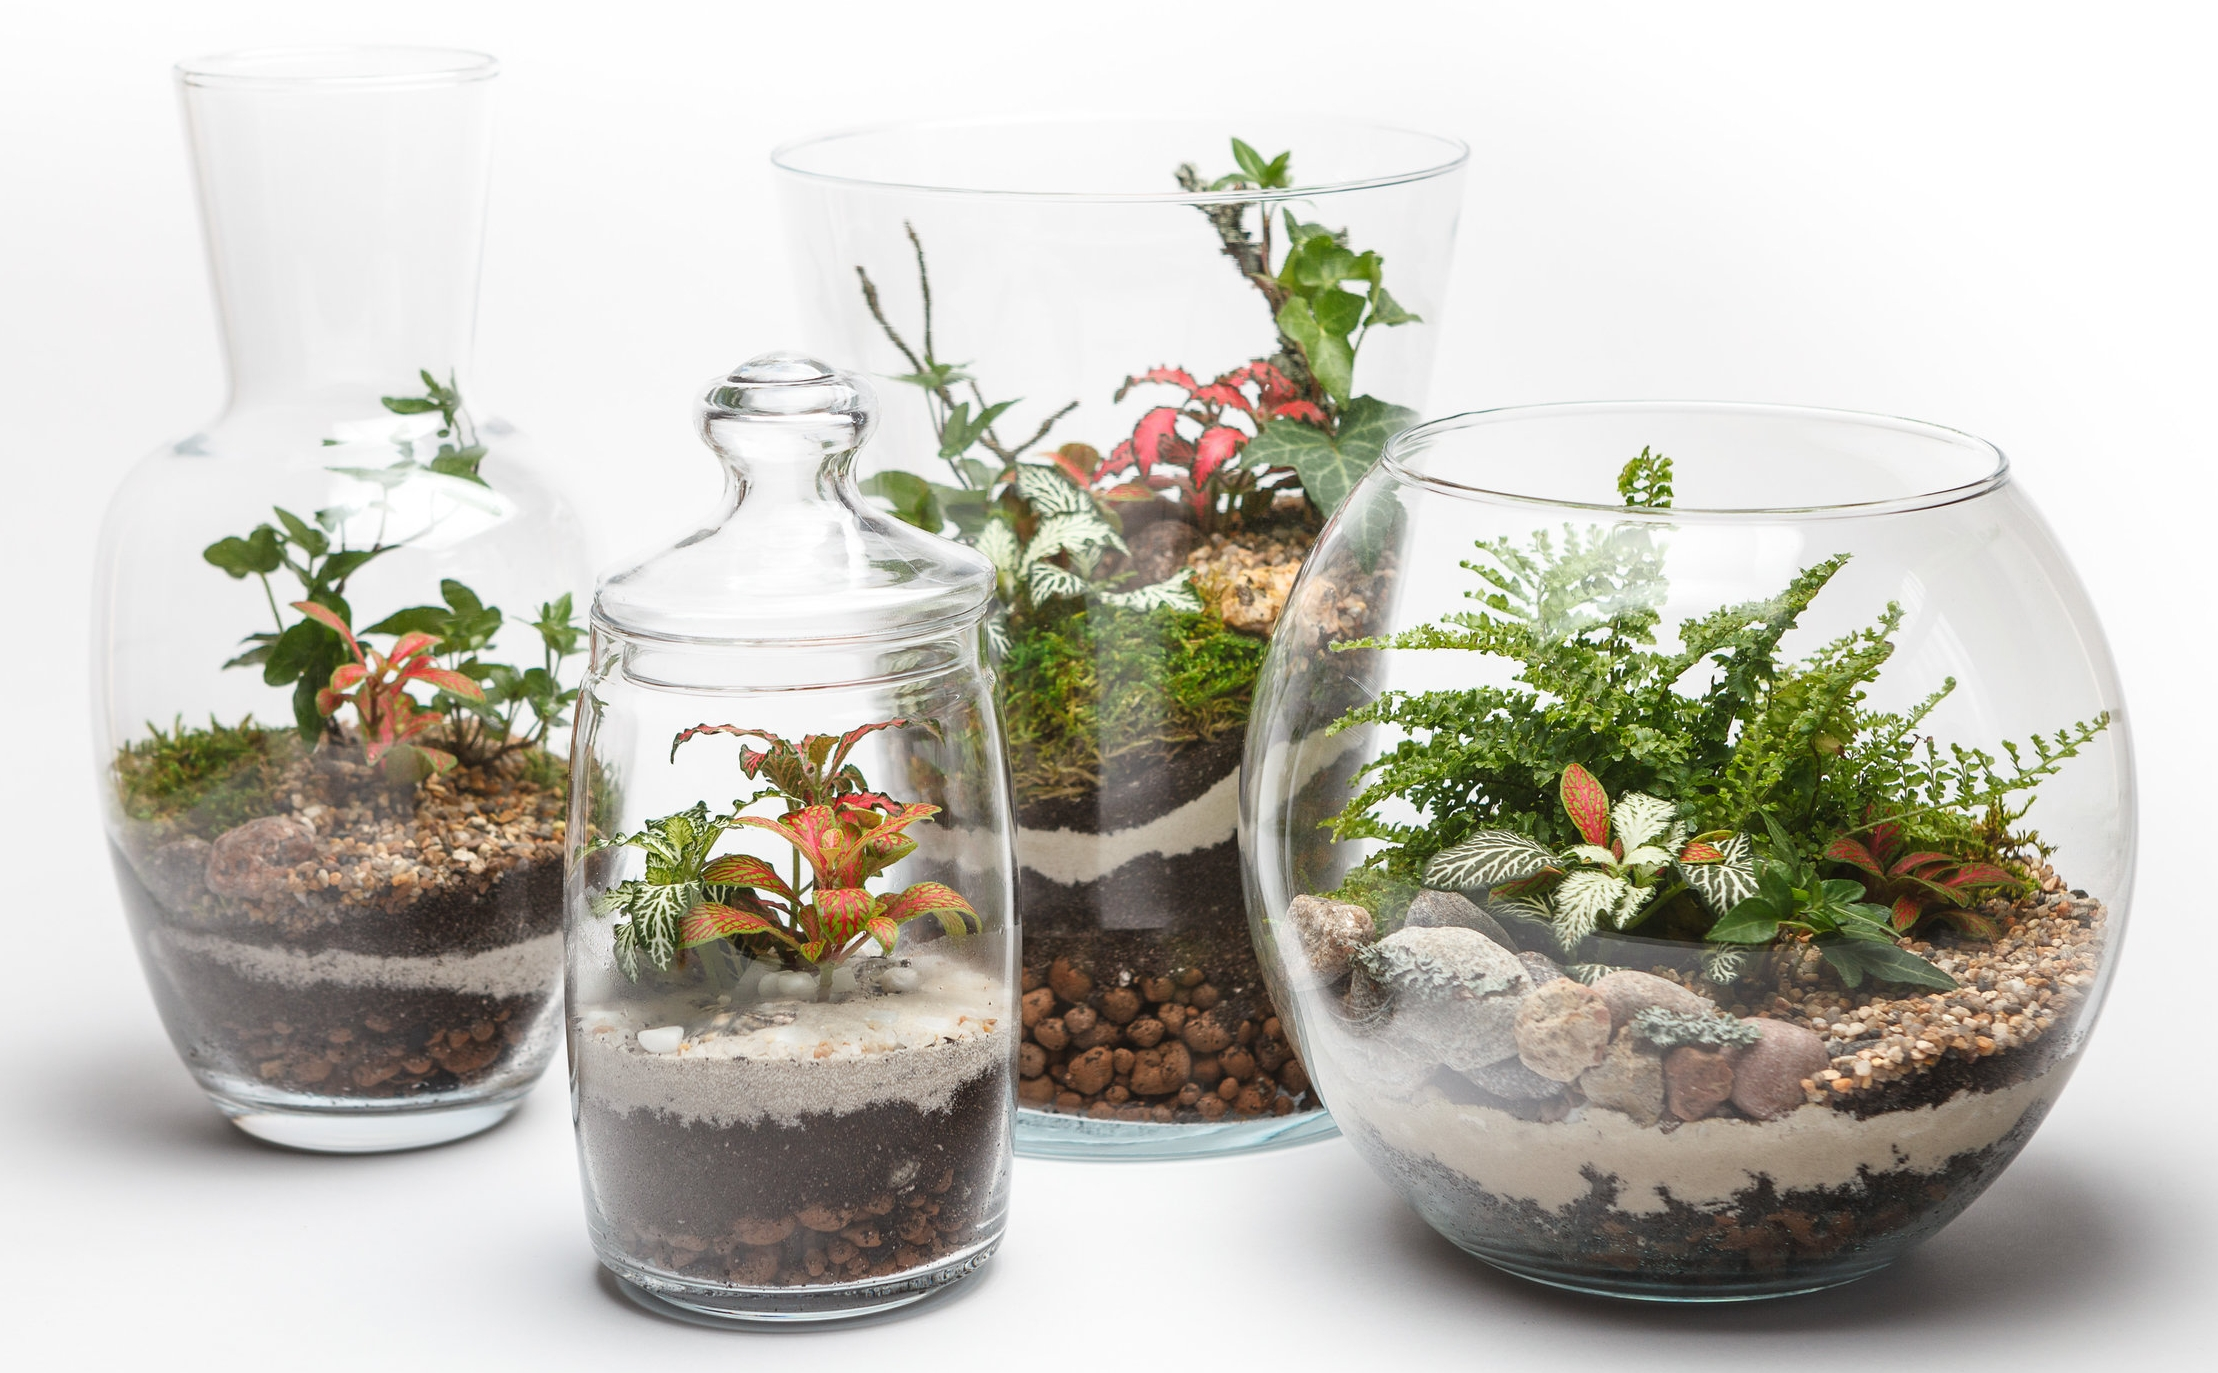 Mini gardens (terrariums) in a different glass vases isolated on white background